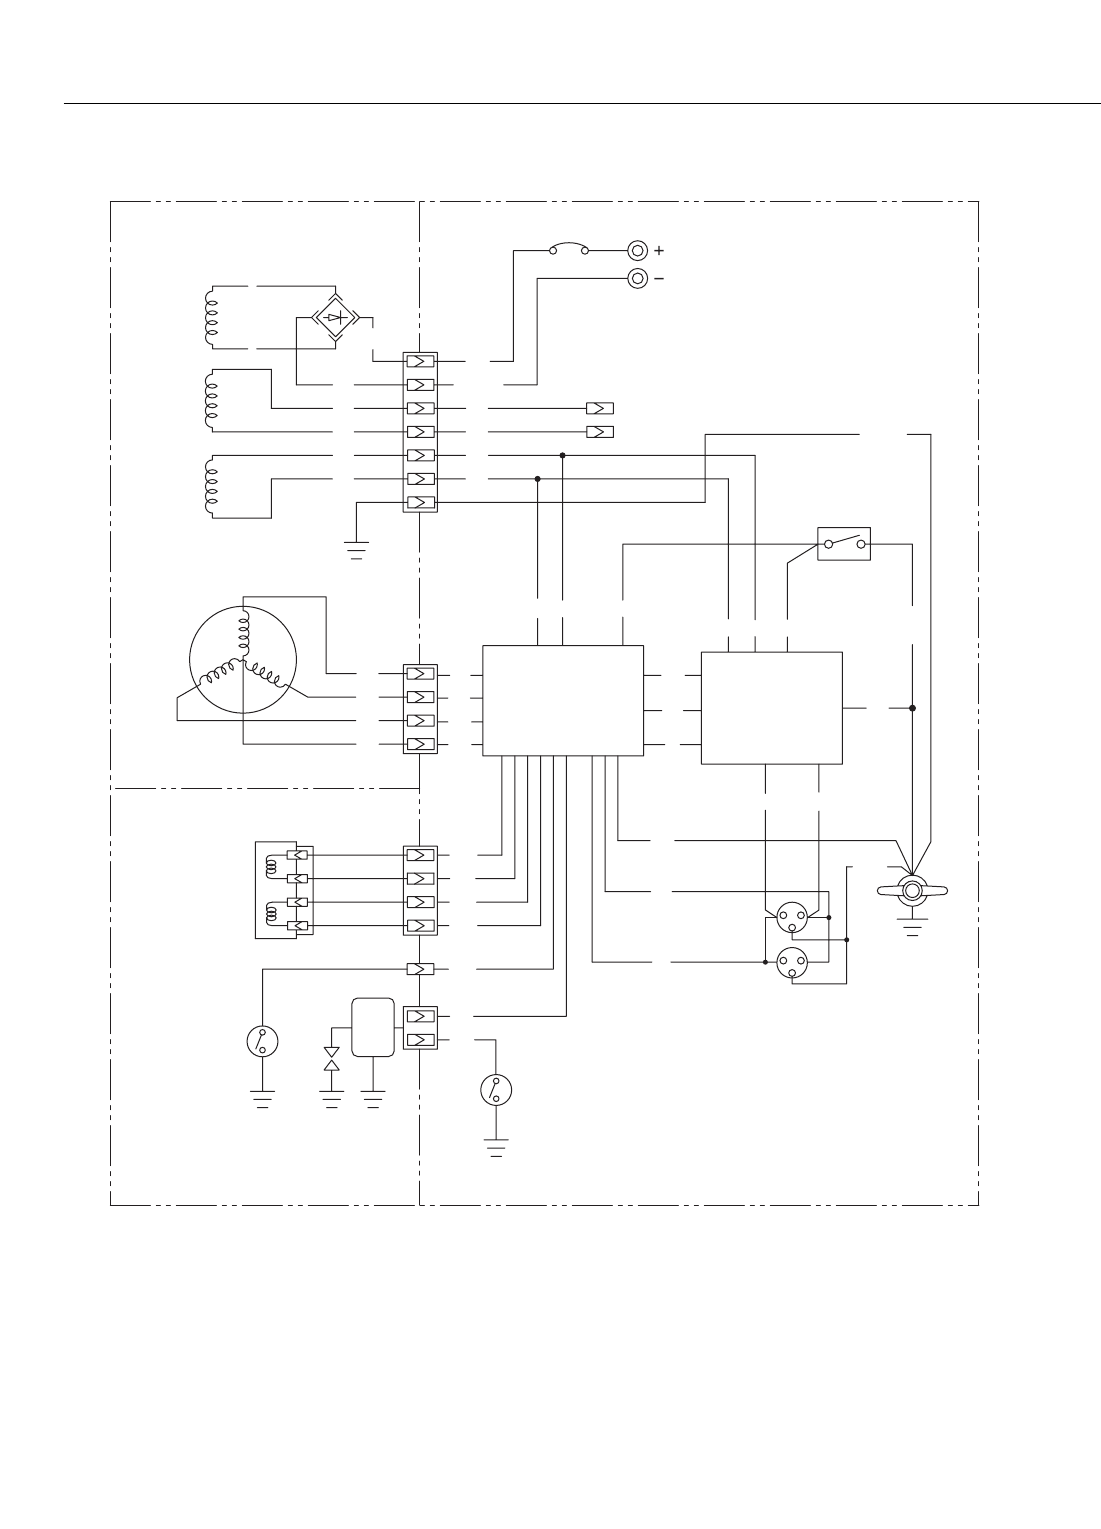 Wiring diagram ey20d wiring diagram and schematics wiring diagram wikishare page 60 of subaru robin power s portable generator rg4300i 1993 subaru legacy fuse box diagram asfbconference2016 Choice Image